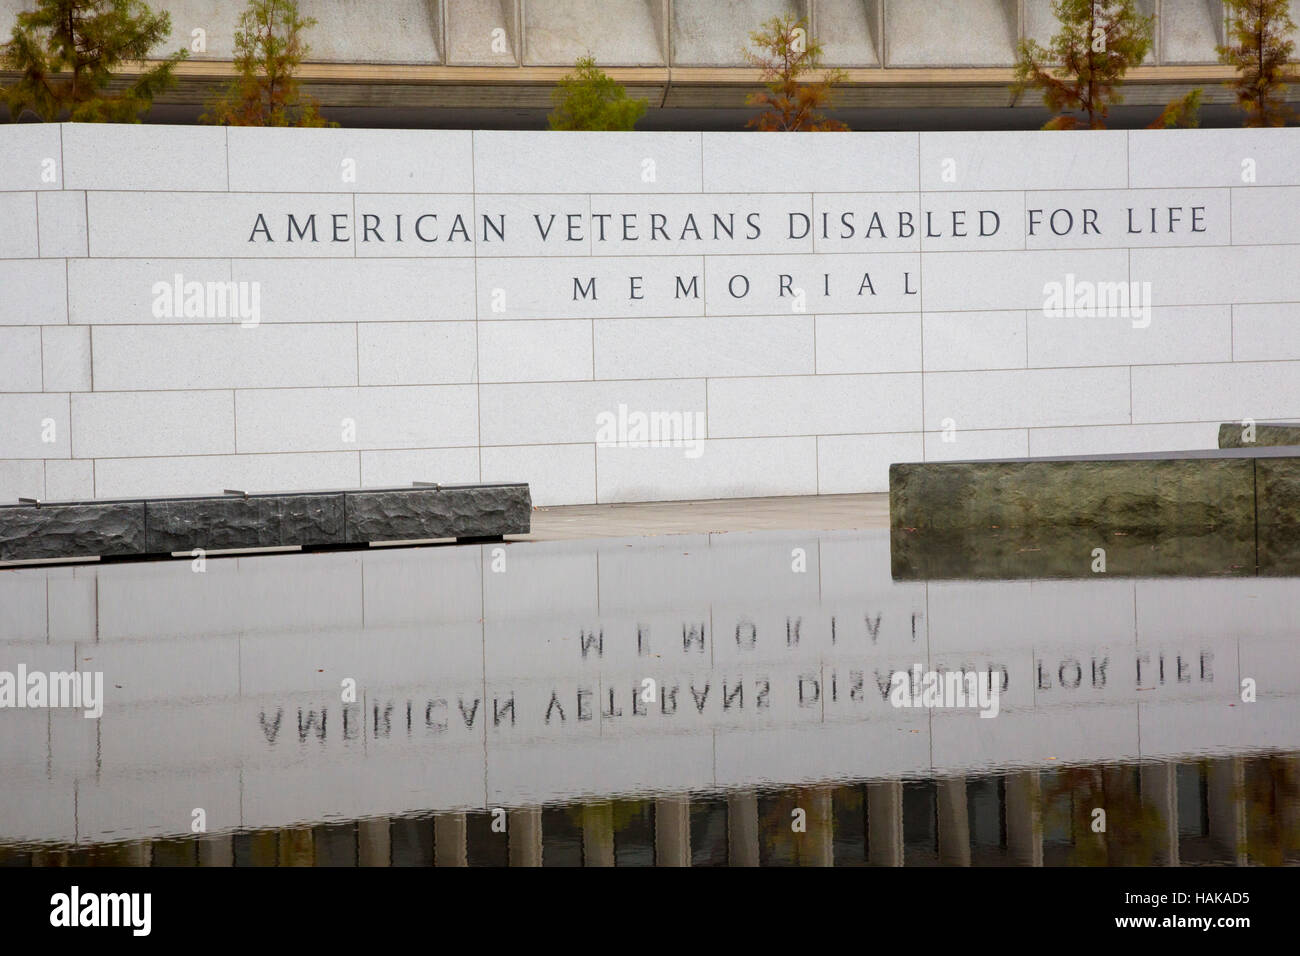 Washington, DC - The American Veterans Disabled for Life Memorial. - Stock Image